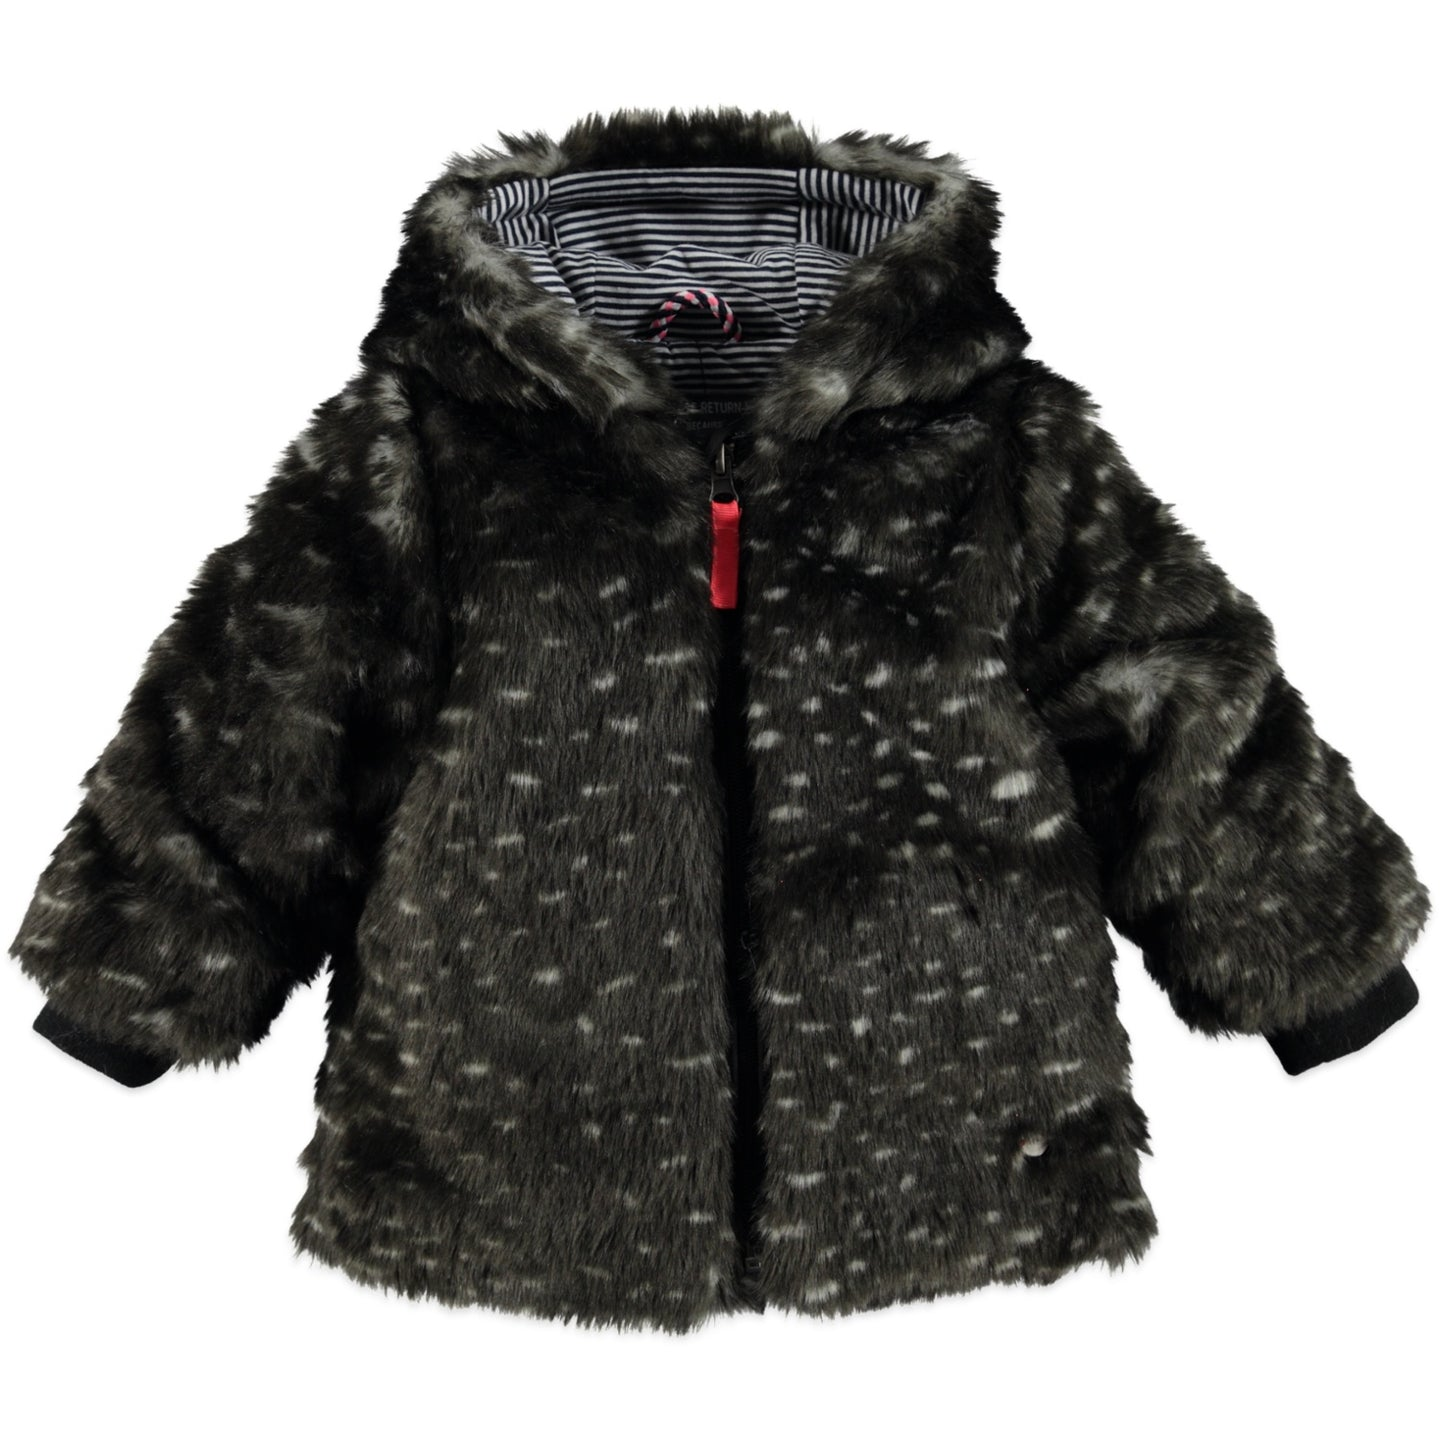 Babyface - Girls Furry Winter Coat - Antra